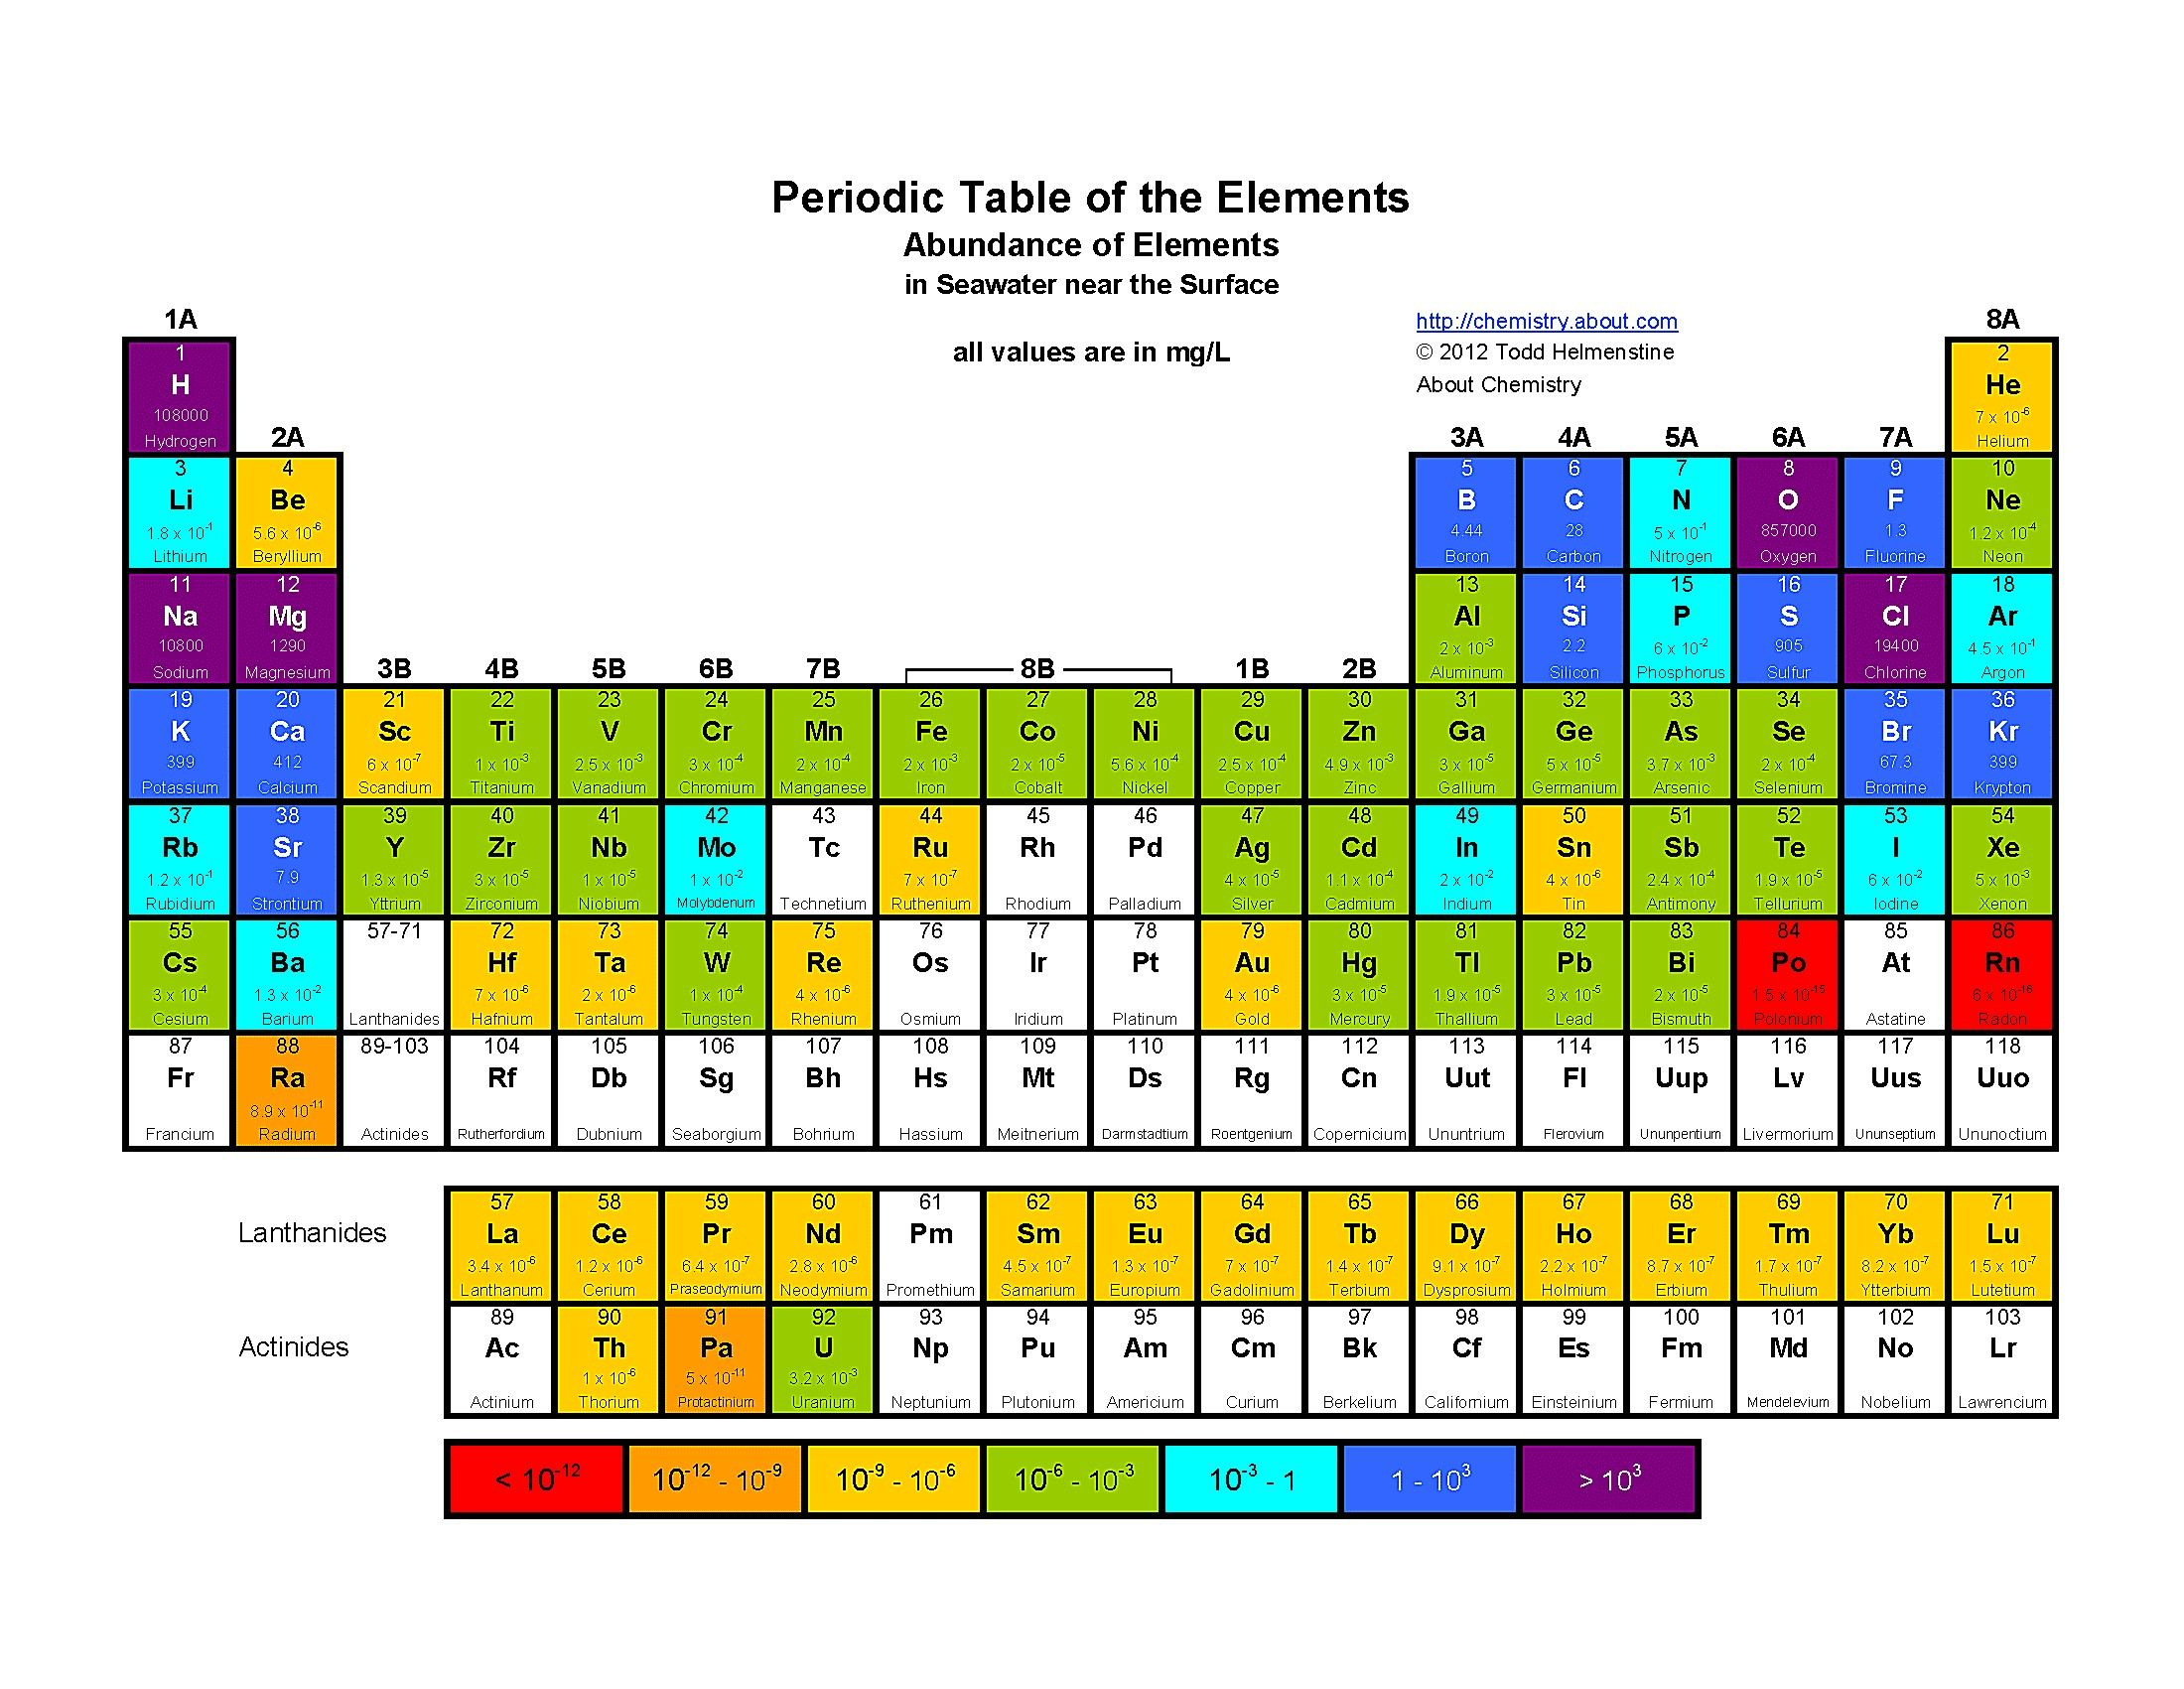 Inspirational Old Periodic Table Pdf Tablepriodic Priodic Tablepriodicsample Periodic Table Geometry Worksheets Periodic Table Of The Elements [ 1701 x 2200 Pixel ]